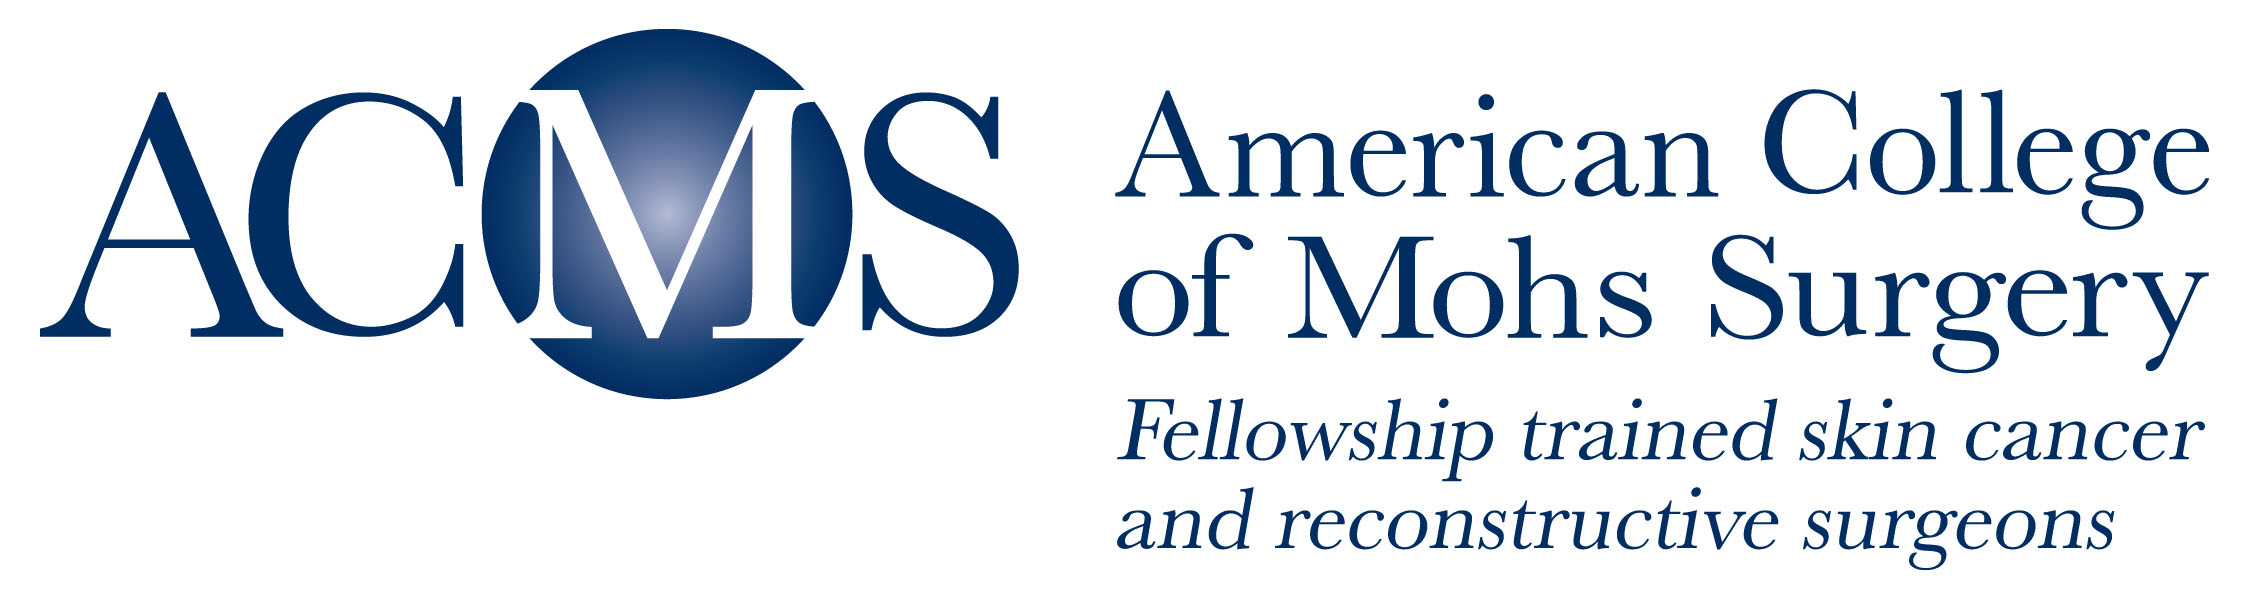 Dr. Molenda is a fellow of the American College of Mohs Surgery